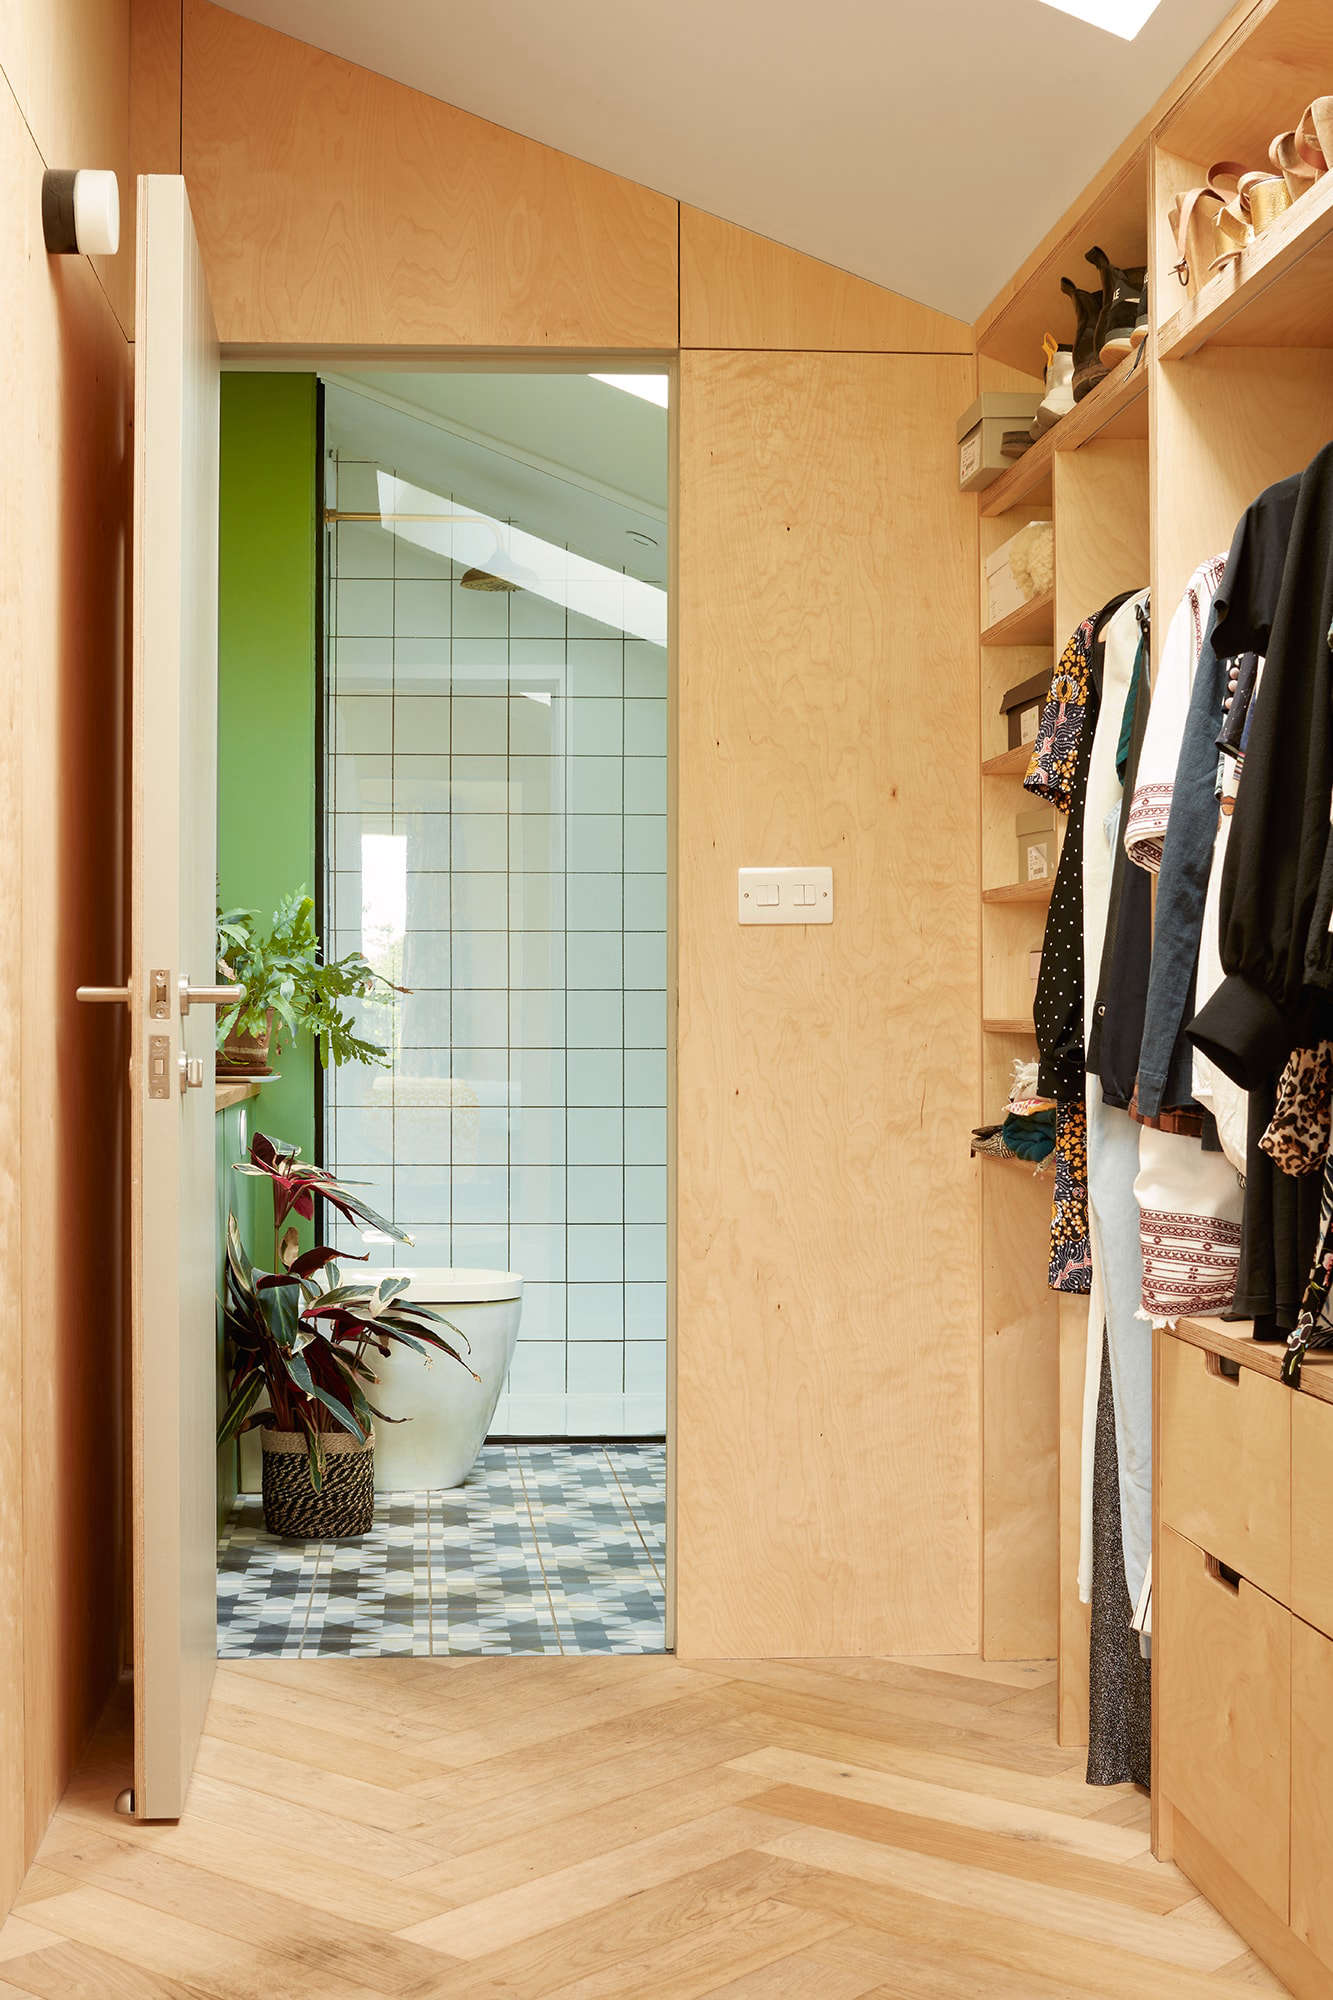 The walk-through plywood closet in the master bedroom.